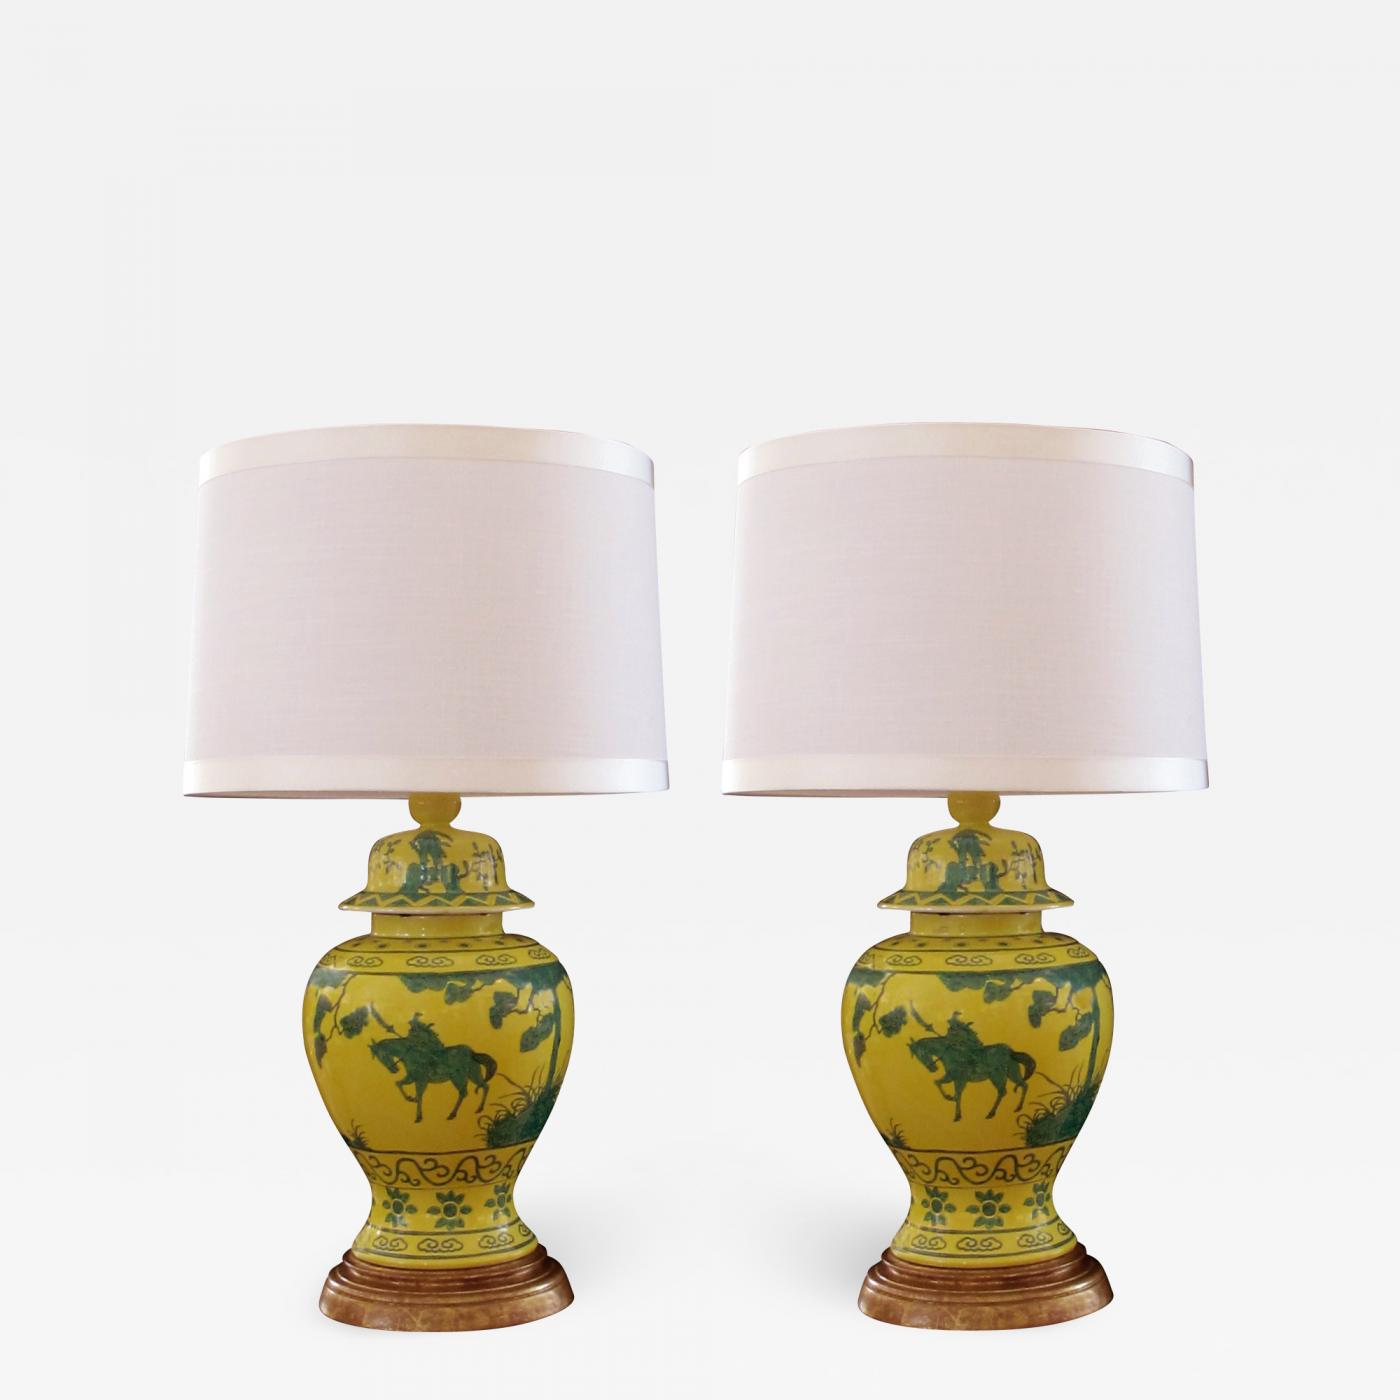 05b4b8b311a6 A Stunning Pair of Japanese Canary Yellow Lamps with Green ...